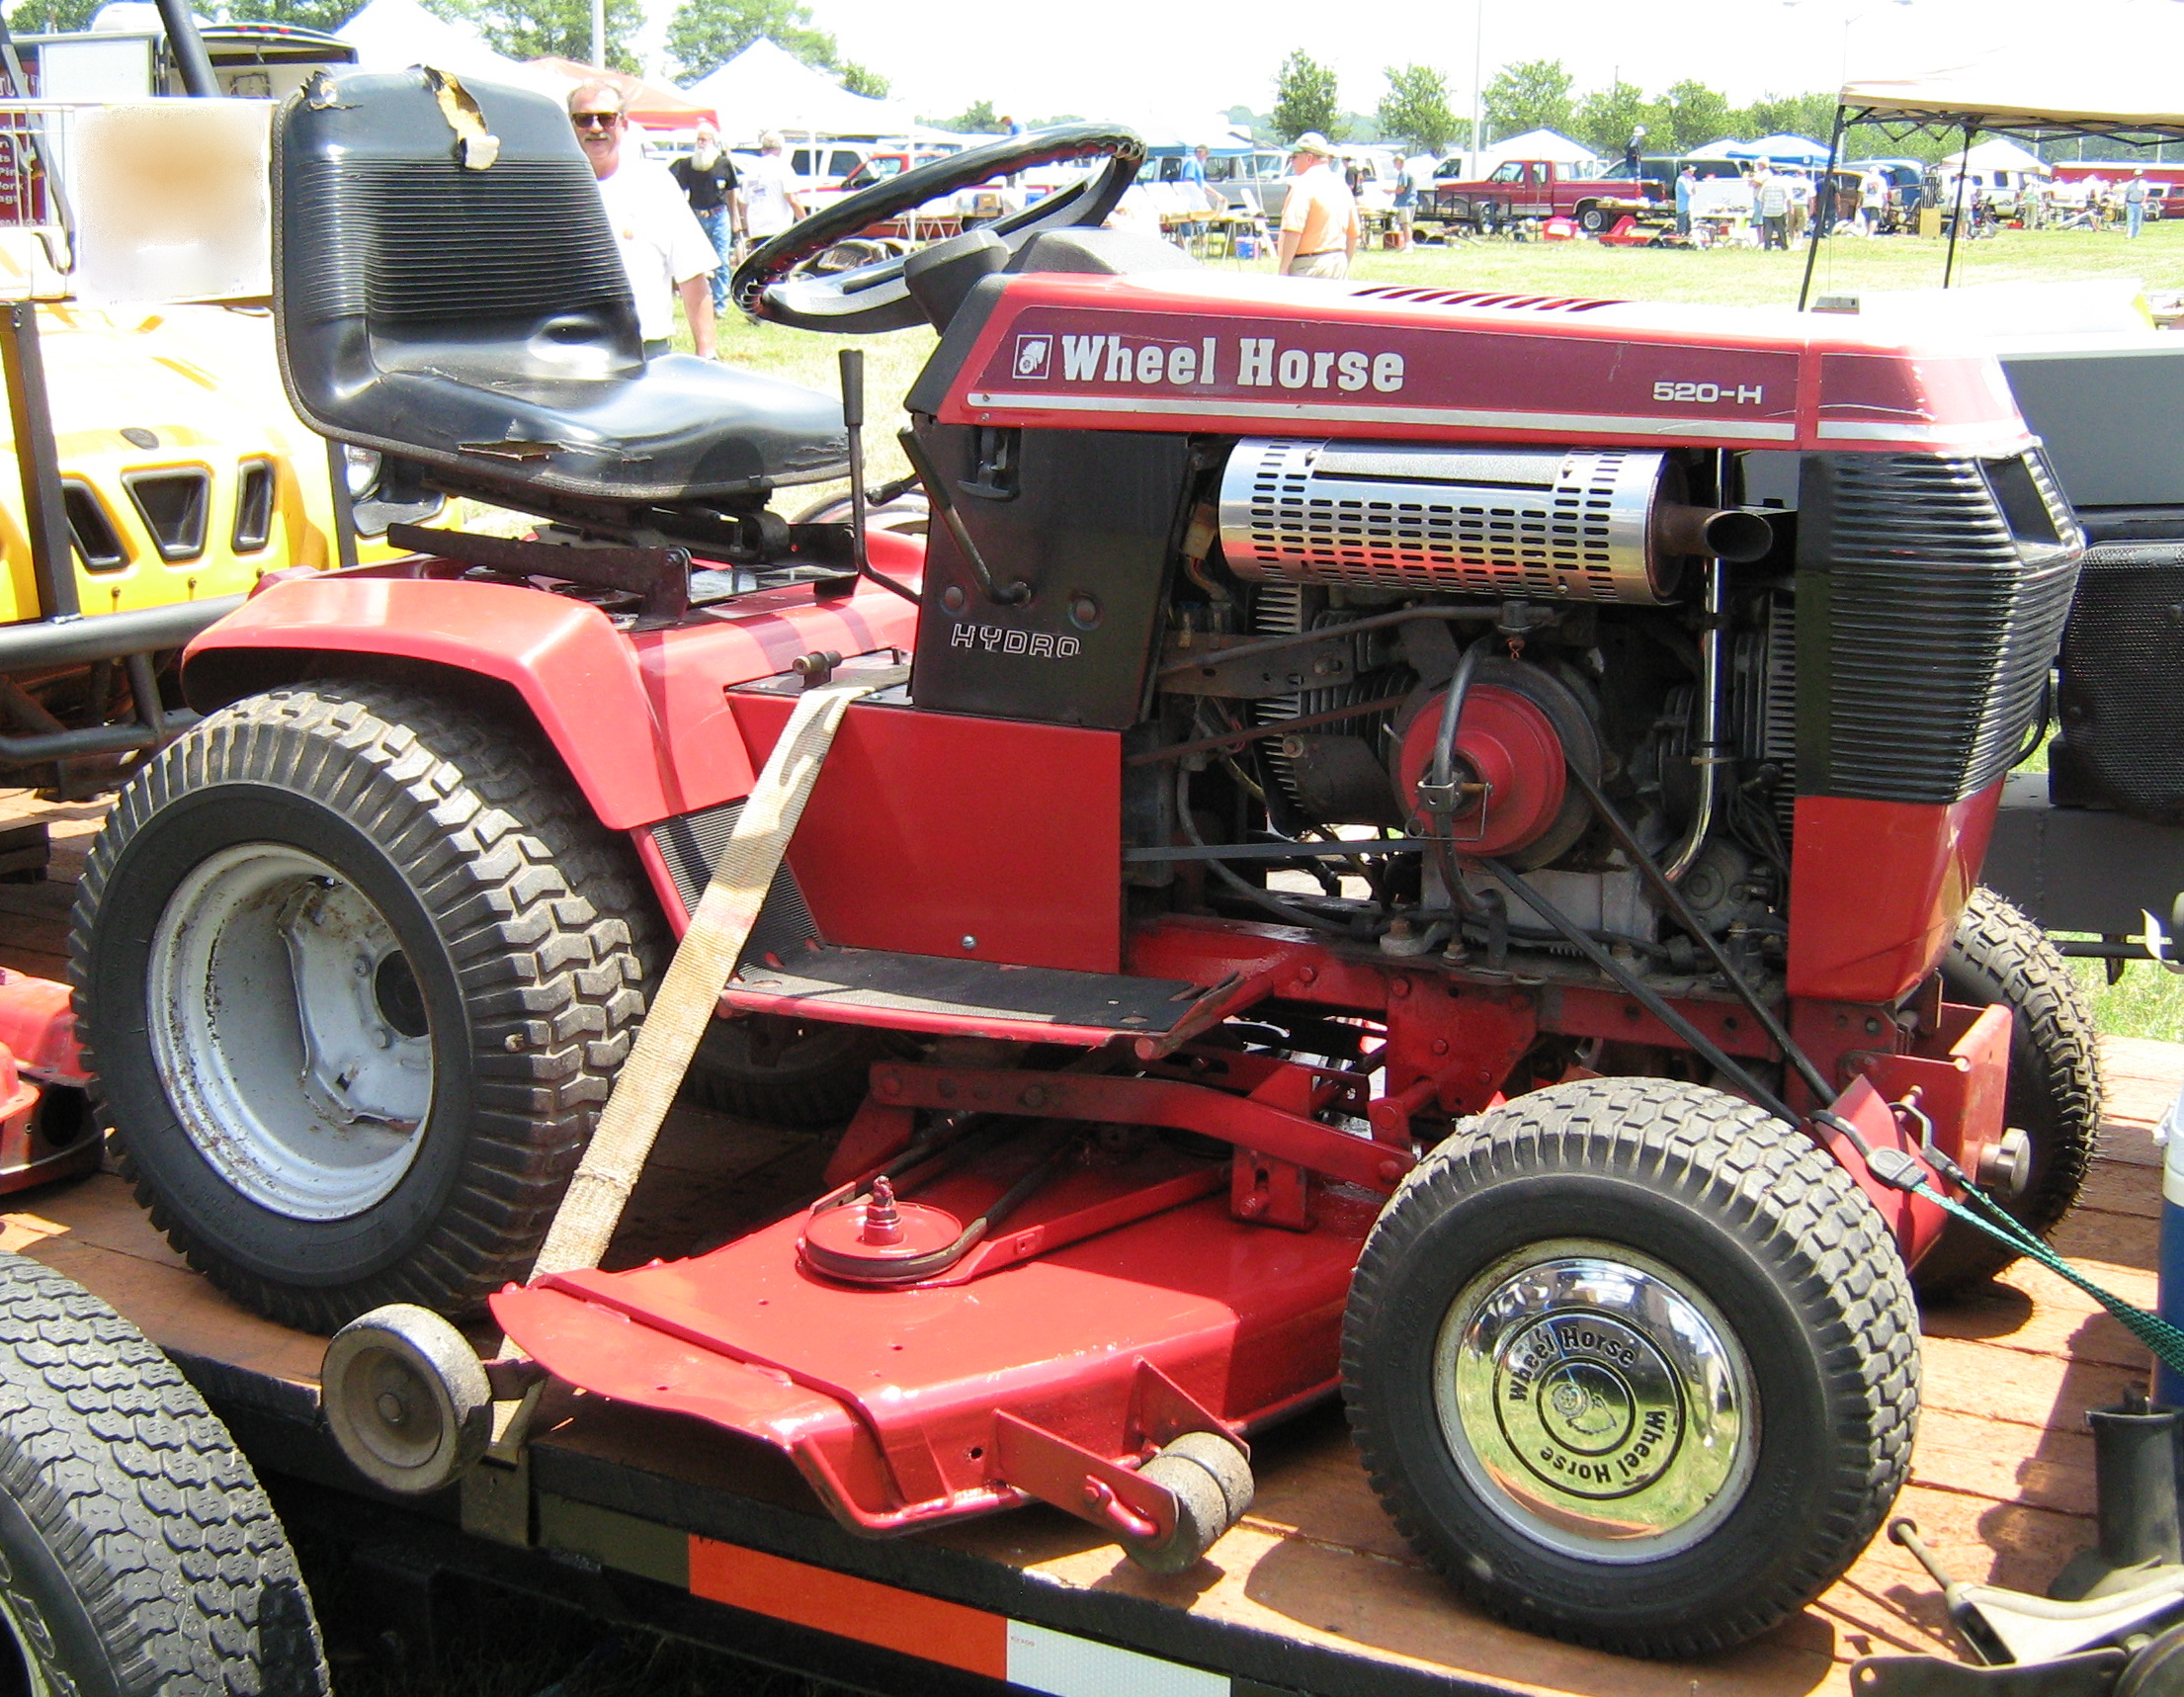 Diagram Wheel Horse Tractor Just Another Wiring Blog Toro Ignition Switch Tractors Construction Plant Wiki Fandom Rh Wikia Com Antique